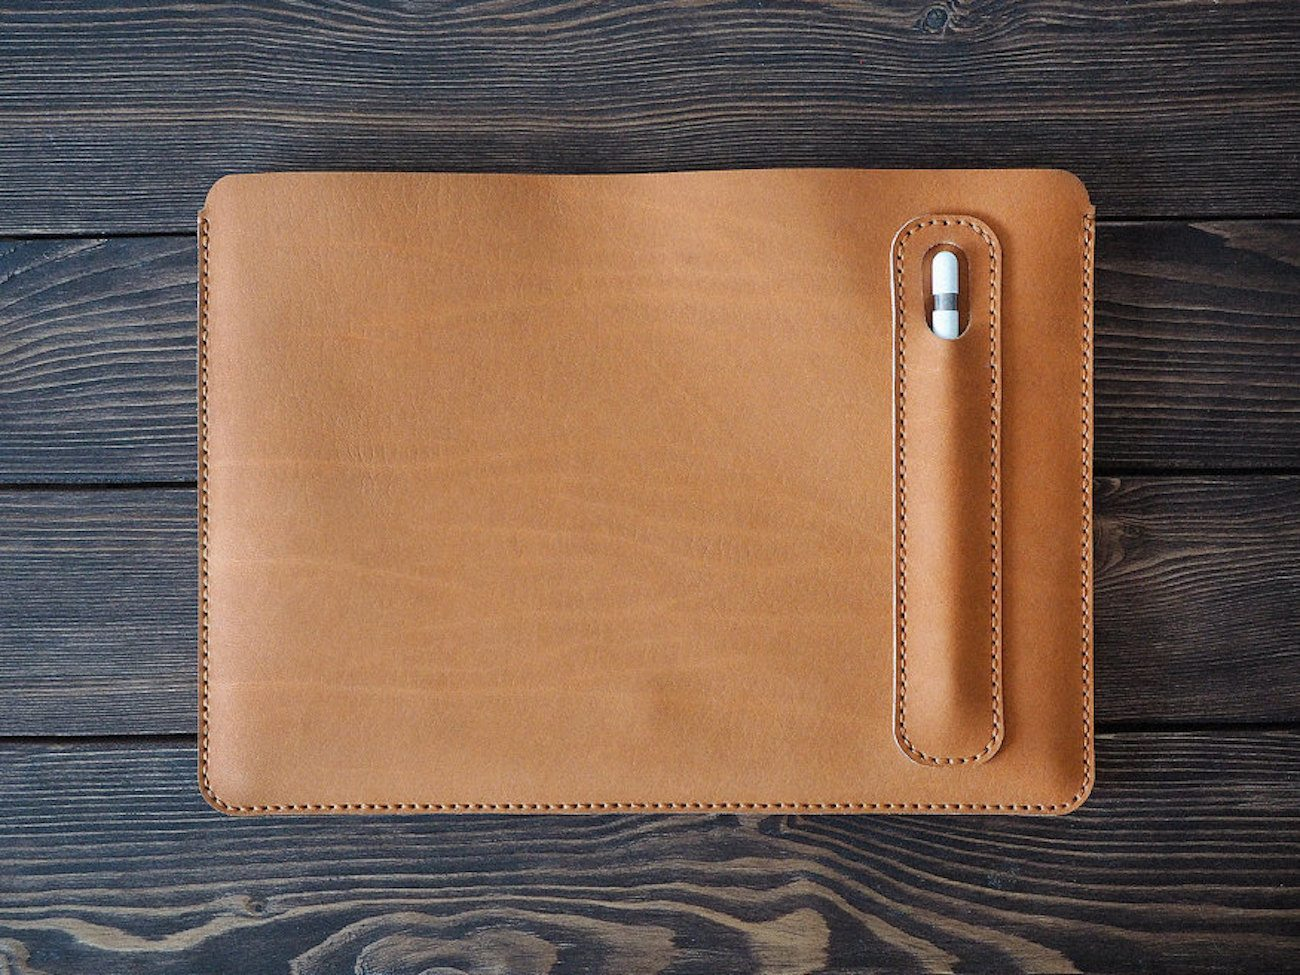 Leather iPad Pro Case